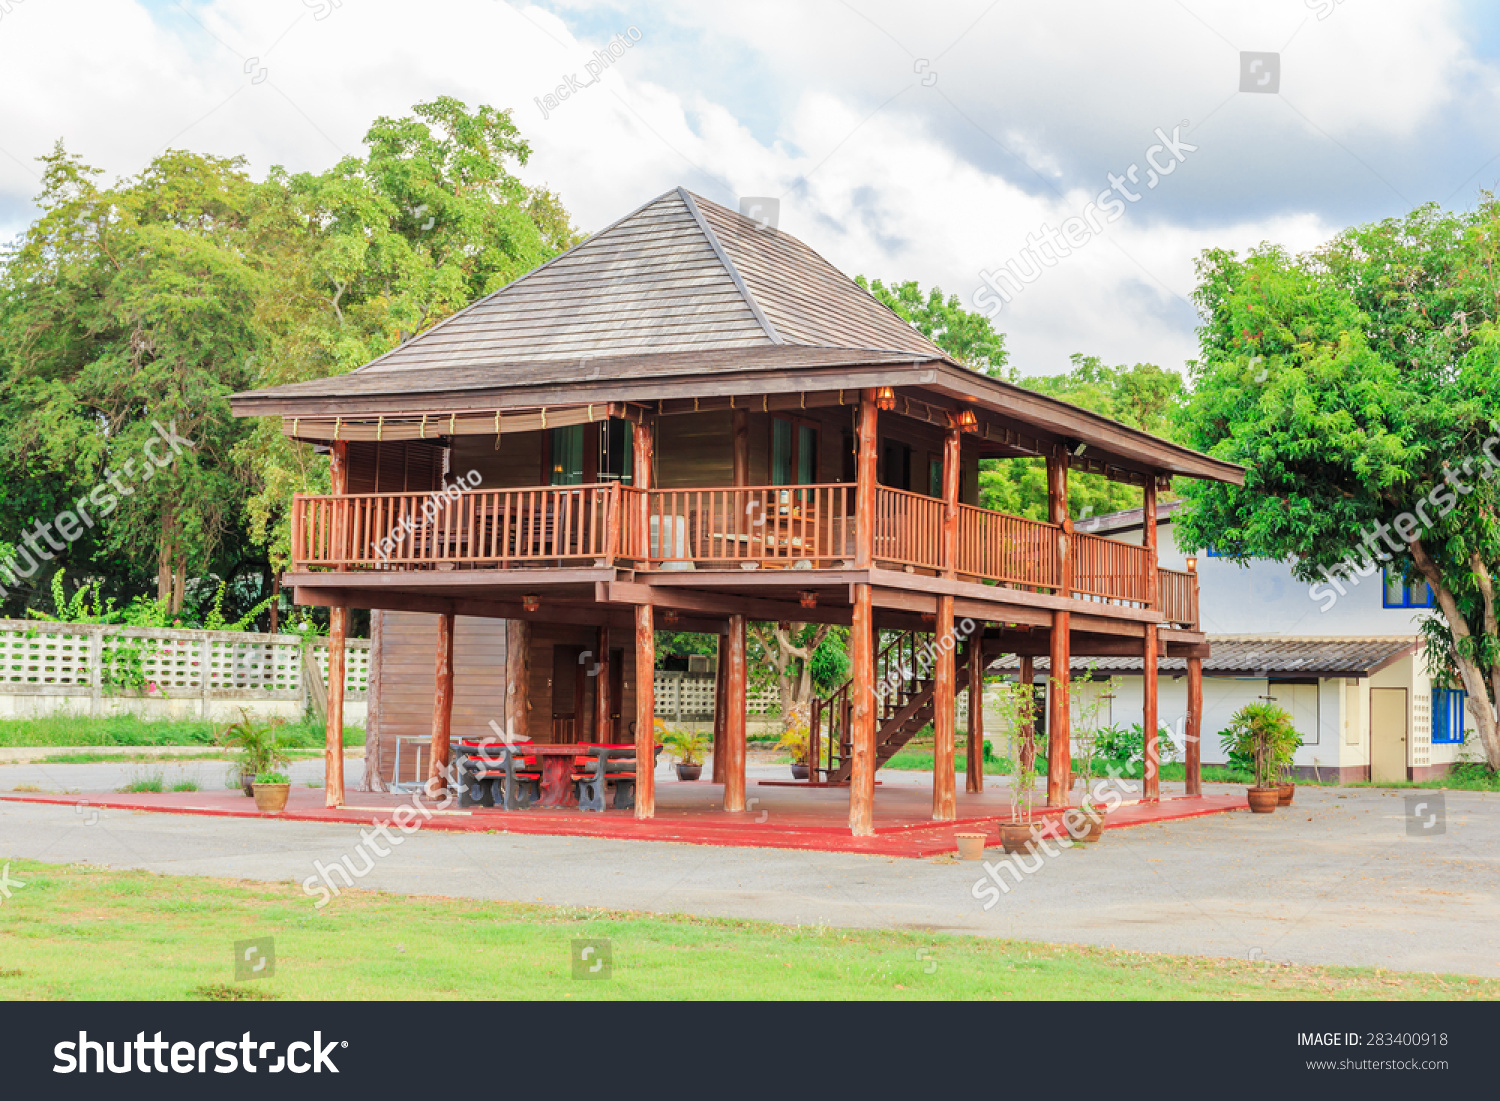 Teak wood house in thai style nature backgrond stock photo 283400918 shutterstock - Wooden vacation houses nature style ...